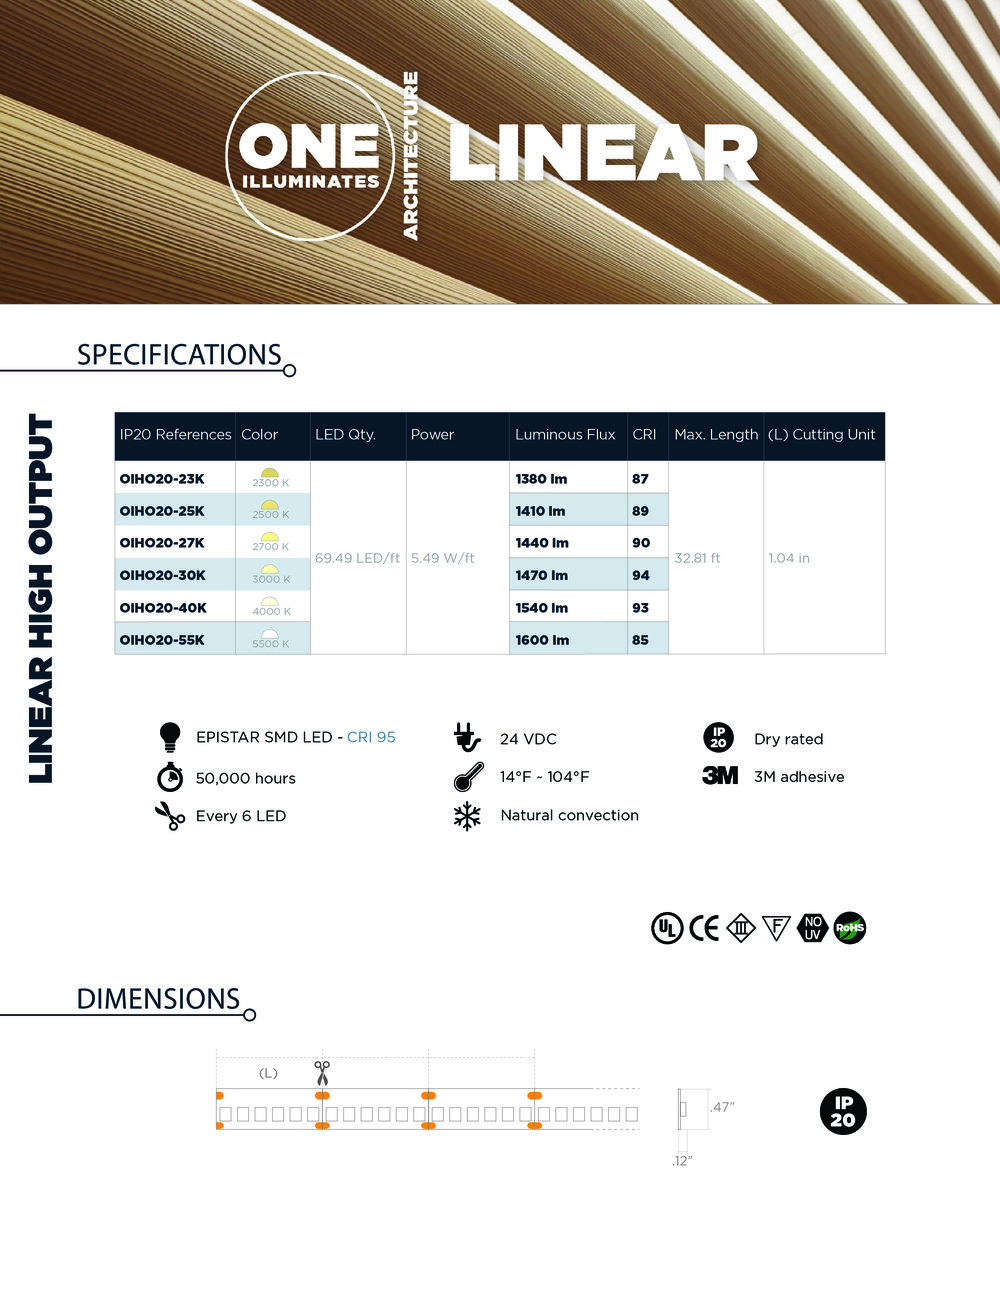 Linear High Output-01.jpg